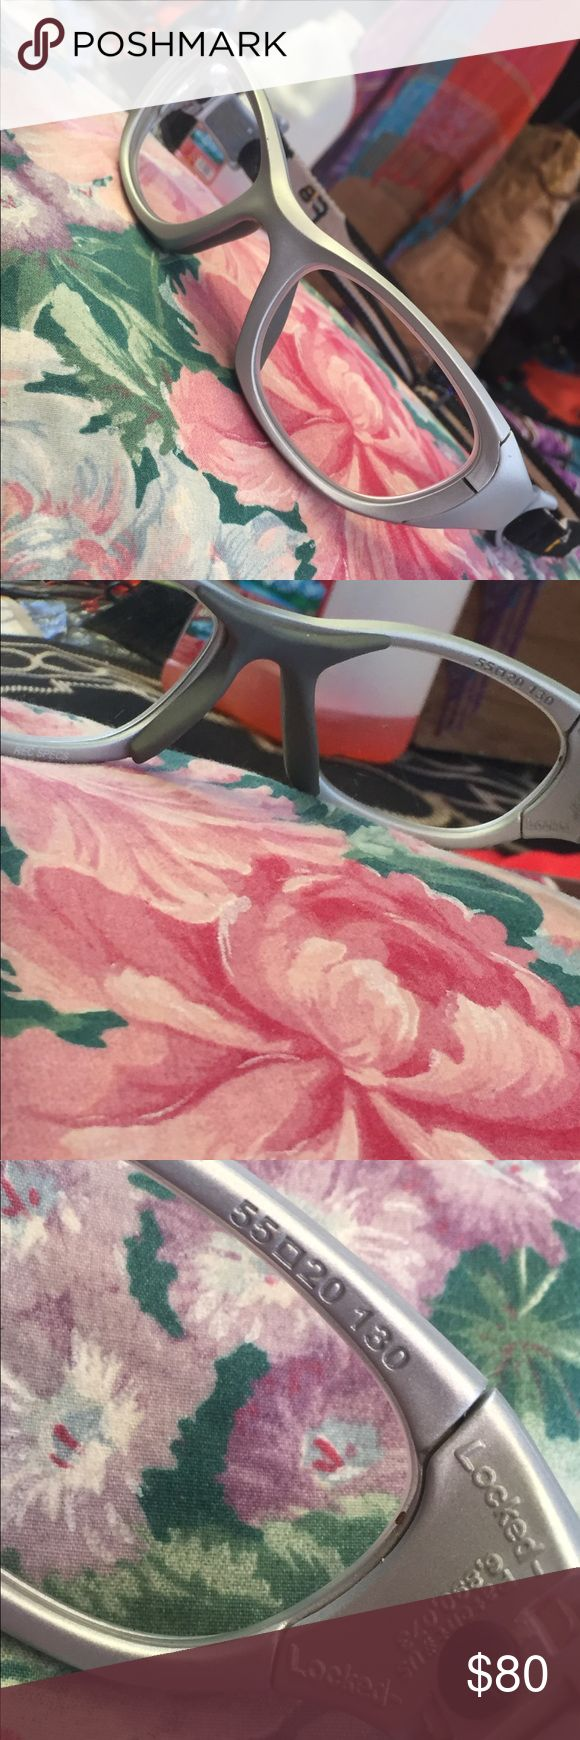 Liberty Sport F8 Morpheus lll Rec Specs Reading glasses magnification 55-20/130. Recreational/ sports glasses. With case. Excellent condition liberty sport F8 Accessories Sunglasses